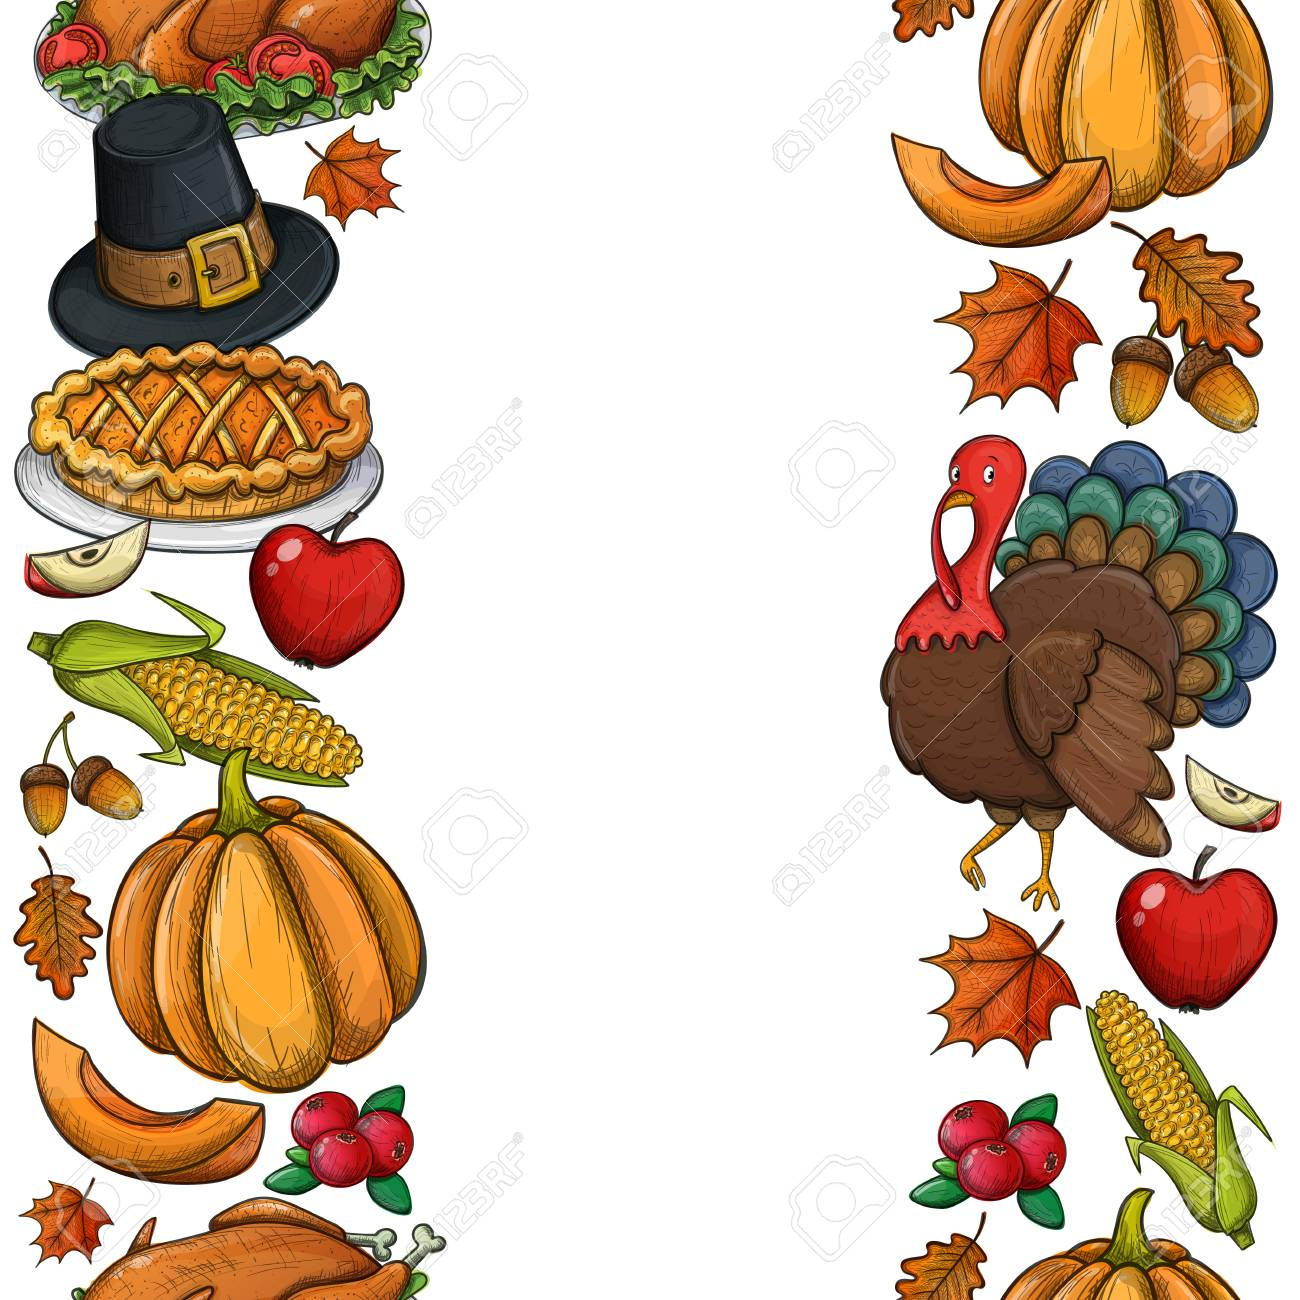 Vertical Seamless Borders With Colorful Thanksgiving Icons